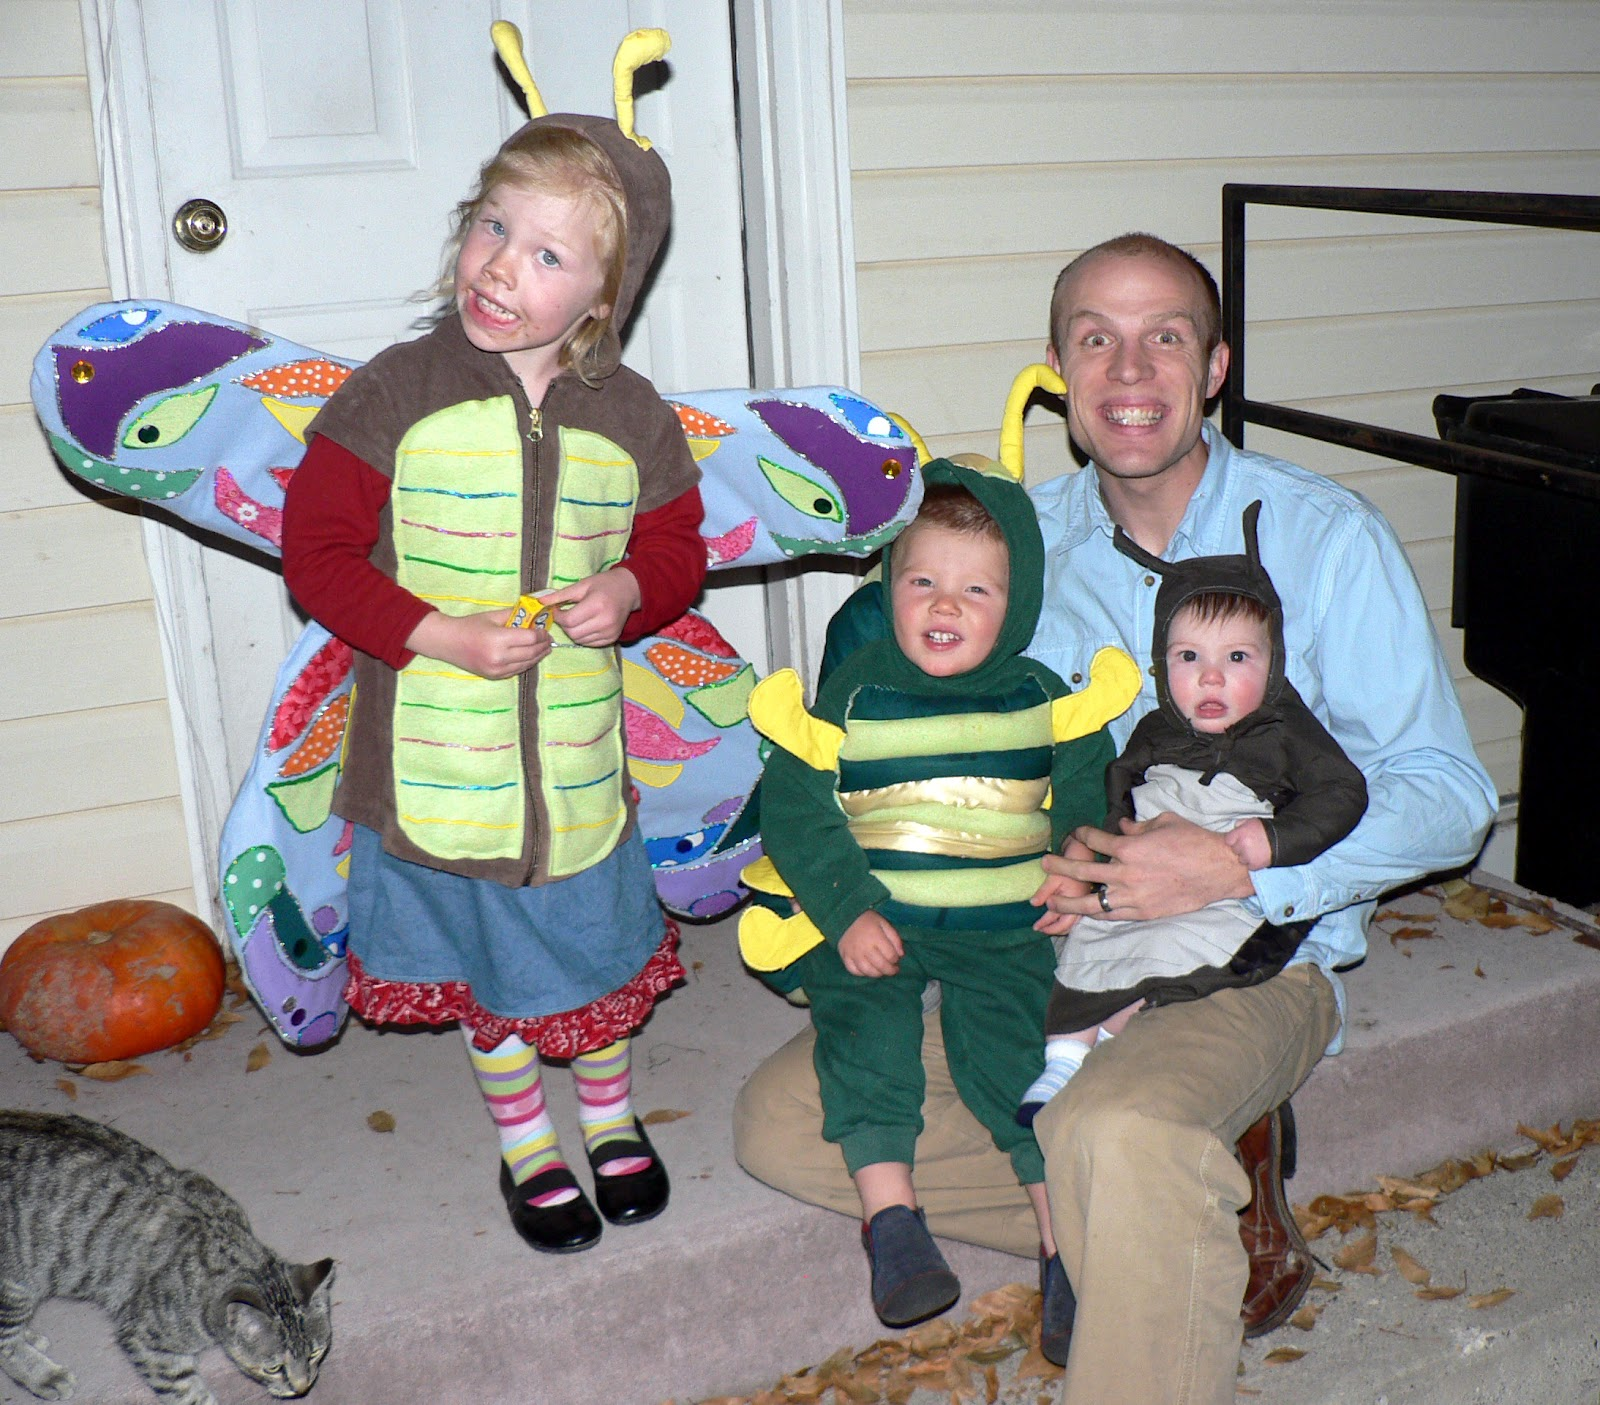 Homemade Halloween Costumes for Kids and Families  sc 1 st  Bless this Mess & Homemade Halloween Costumes for Kids and Families - Bless This Mess